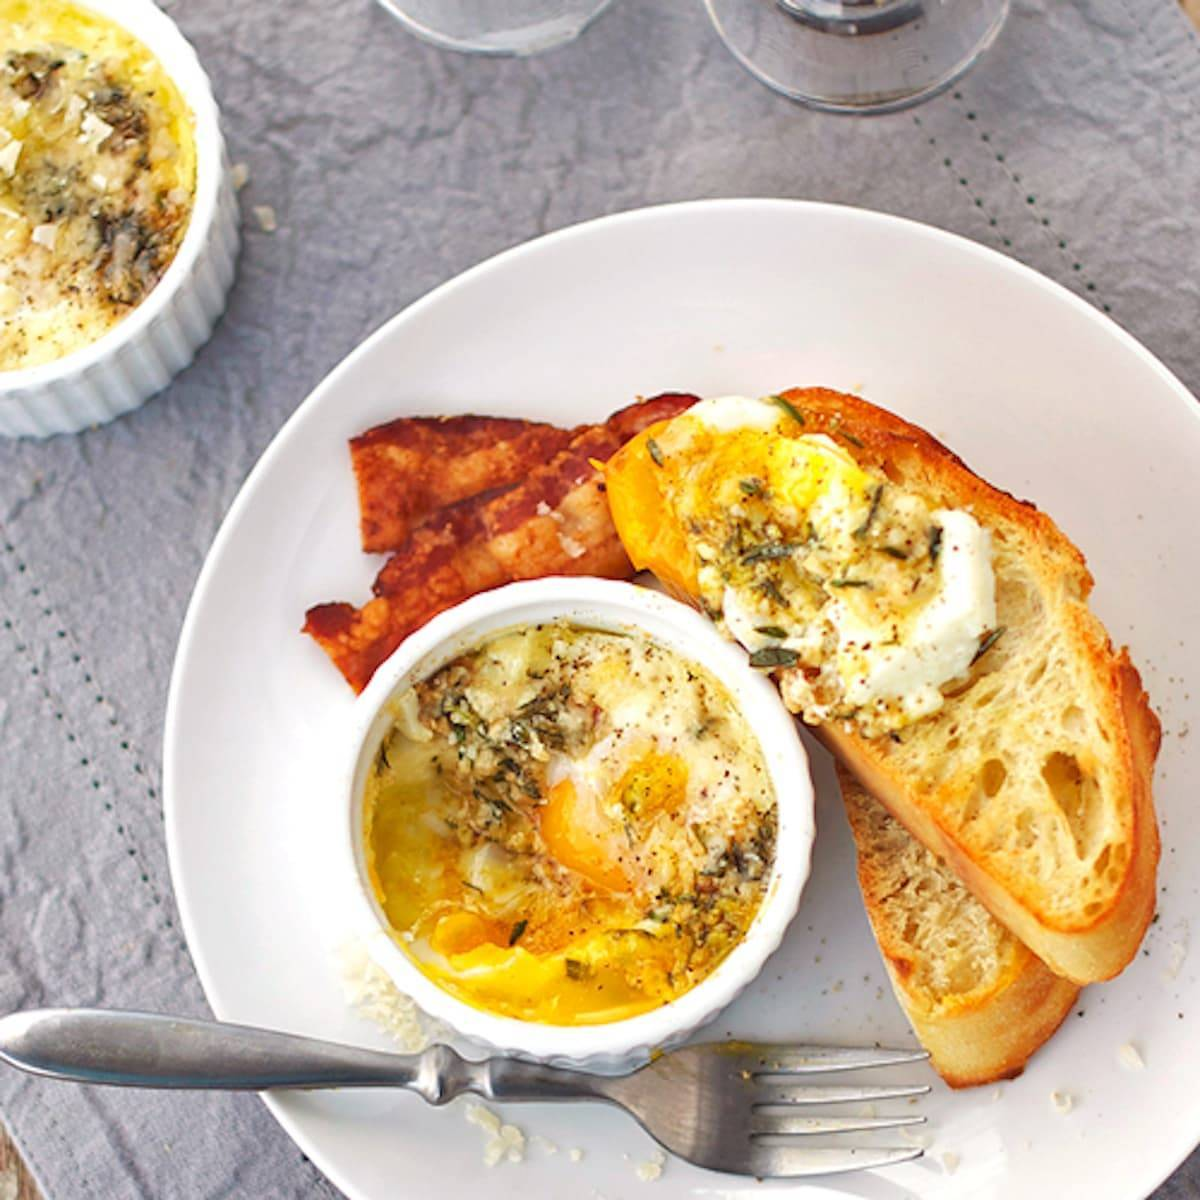 Parmesan baked eggs in a dish and on pieces of bread on a plate.